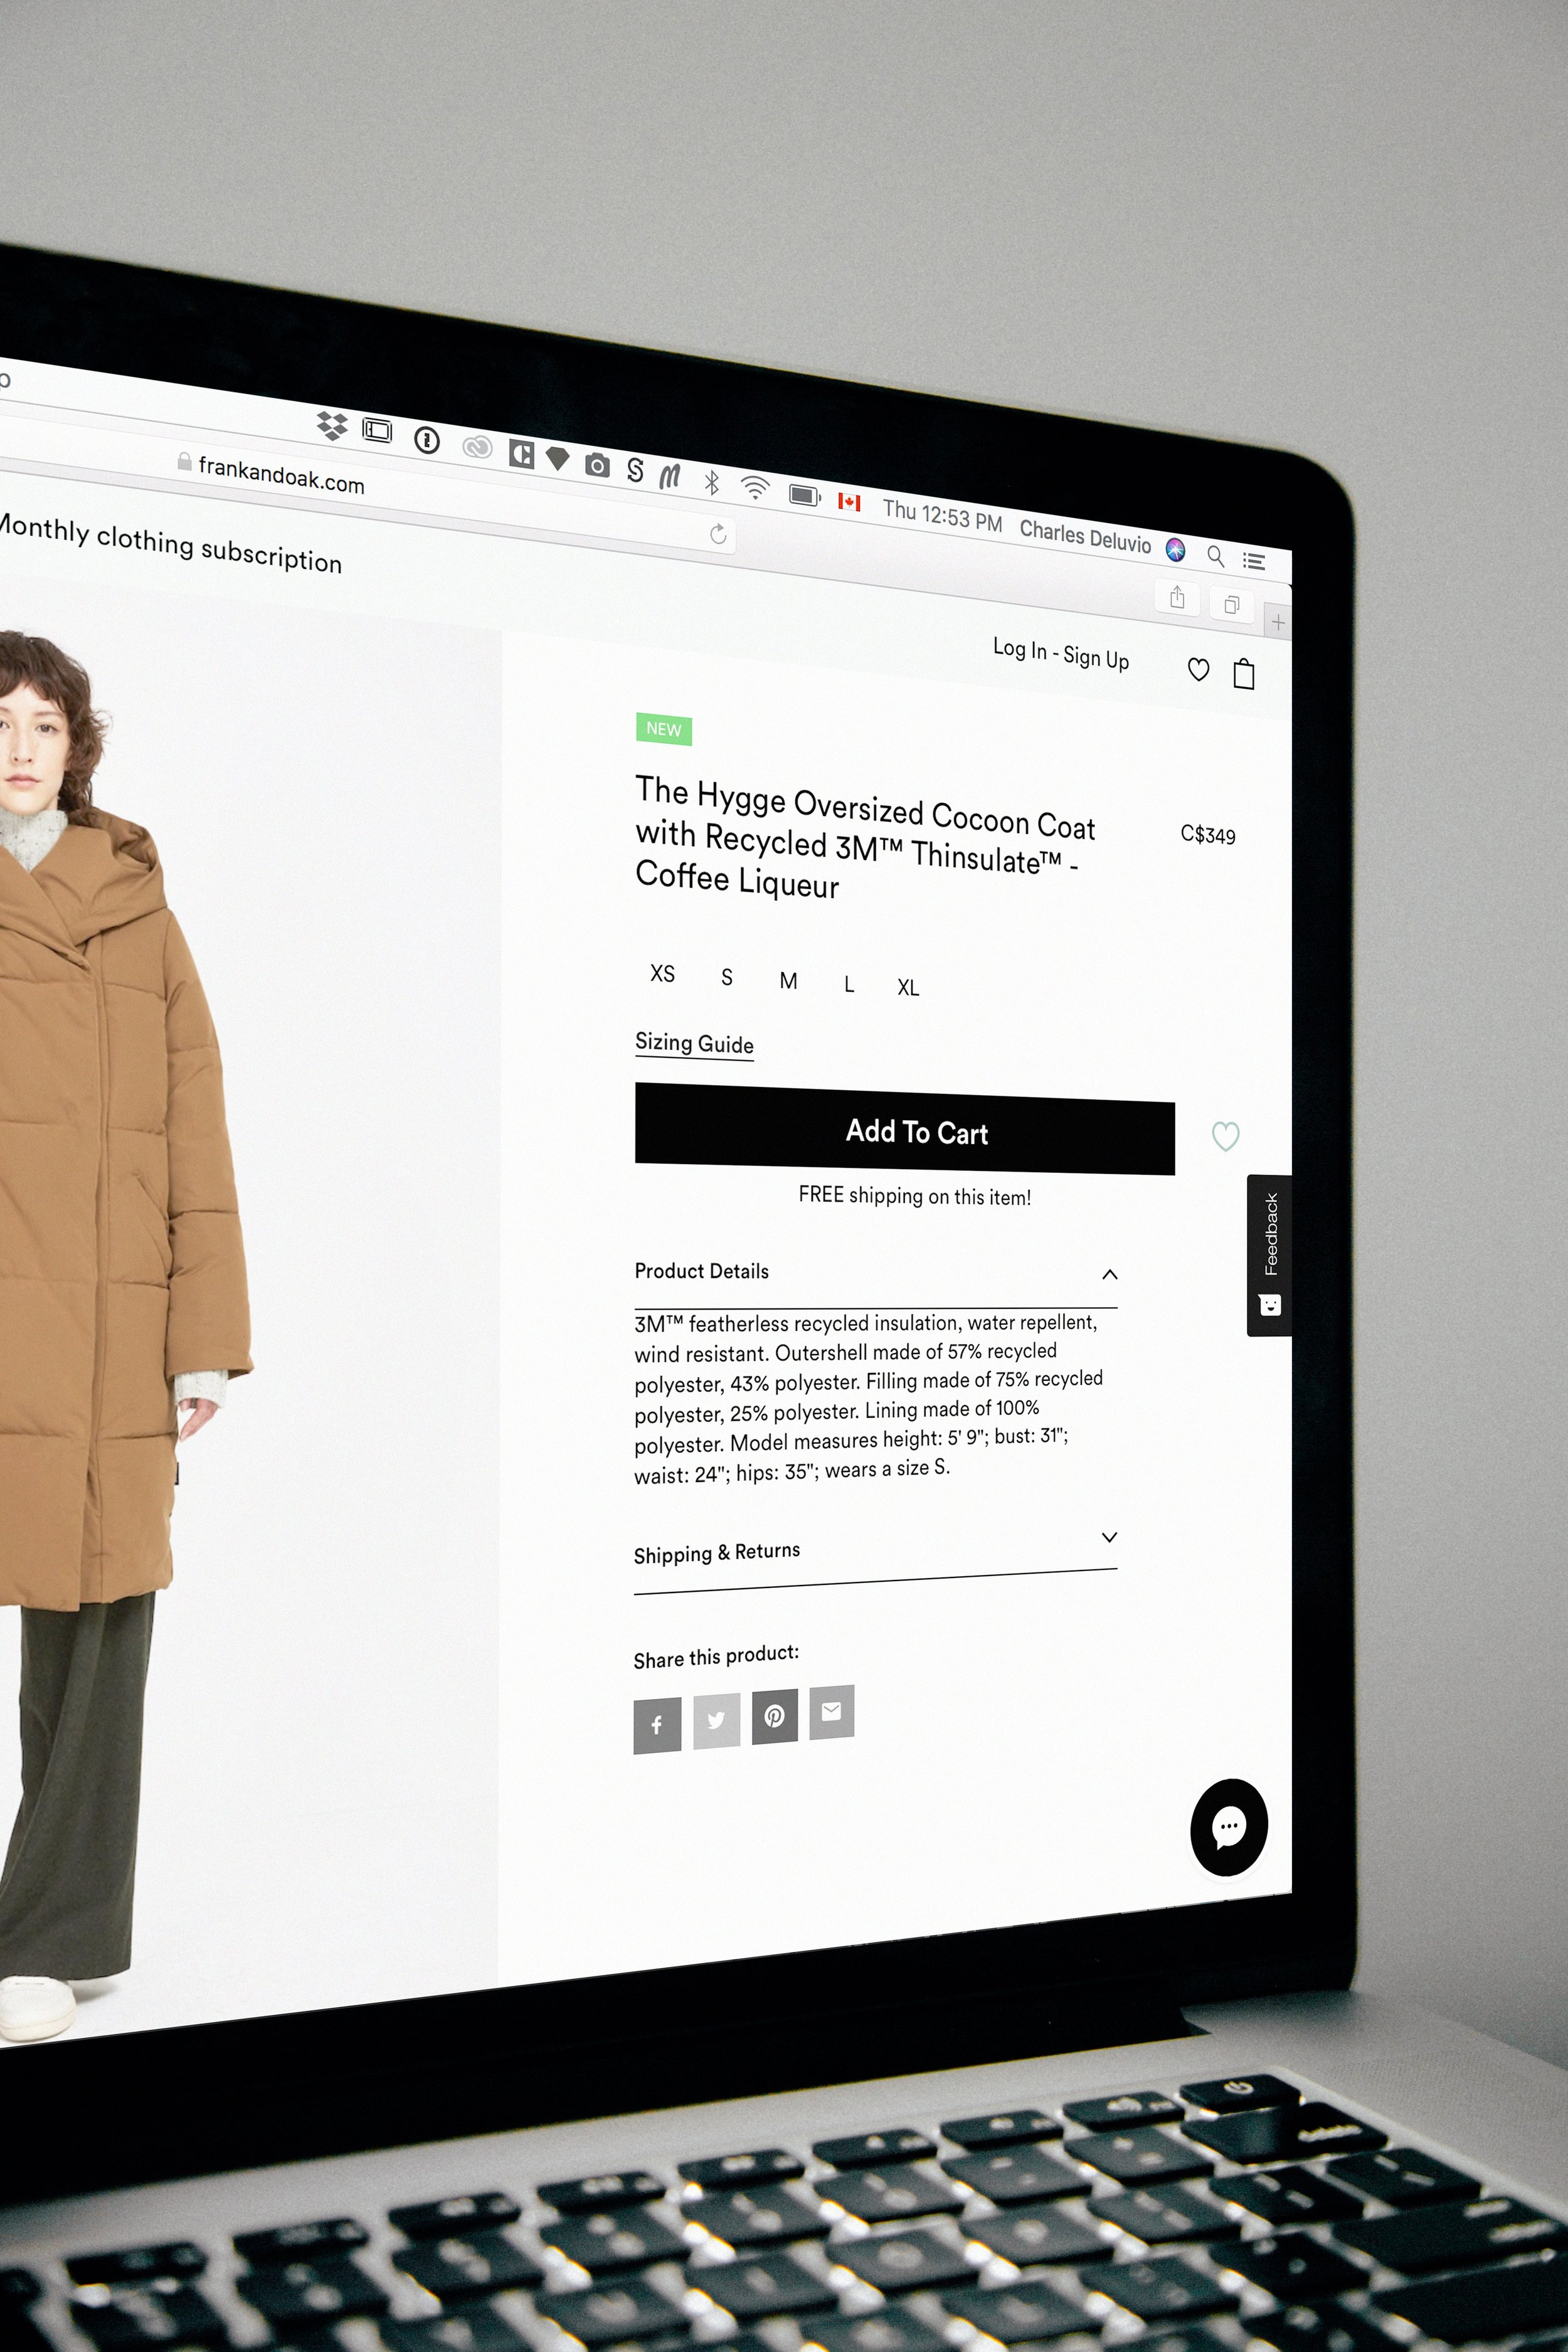 How to promote a fashion brand